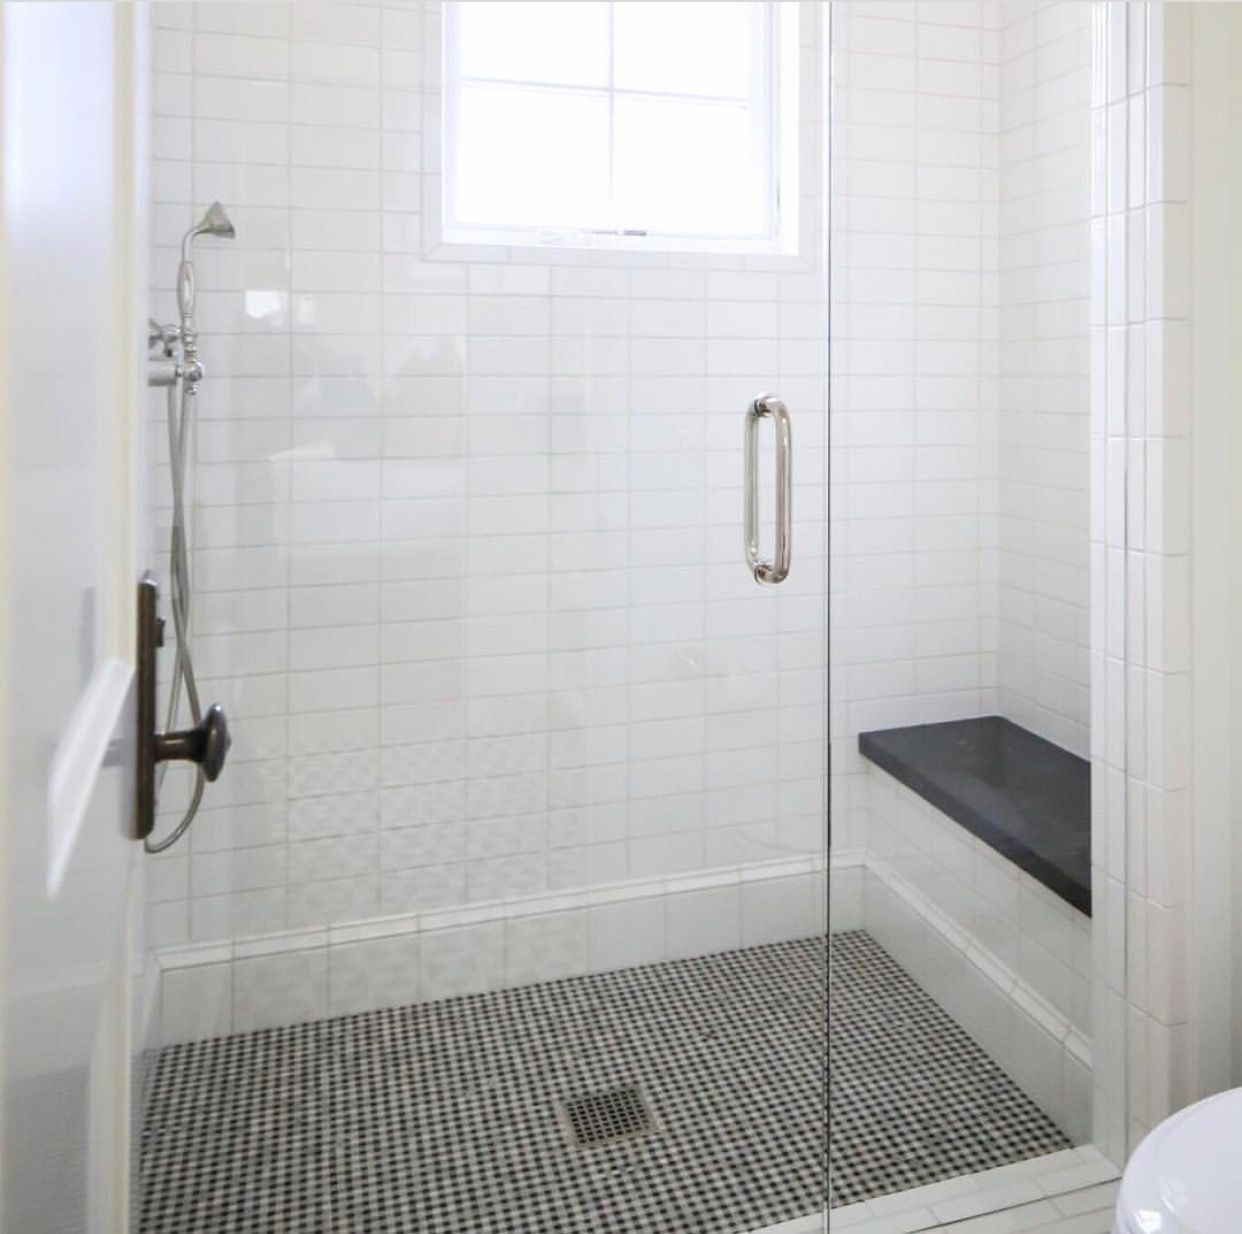 We Could Use The Marble Mosaic Tile With Black Accents That You